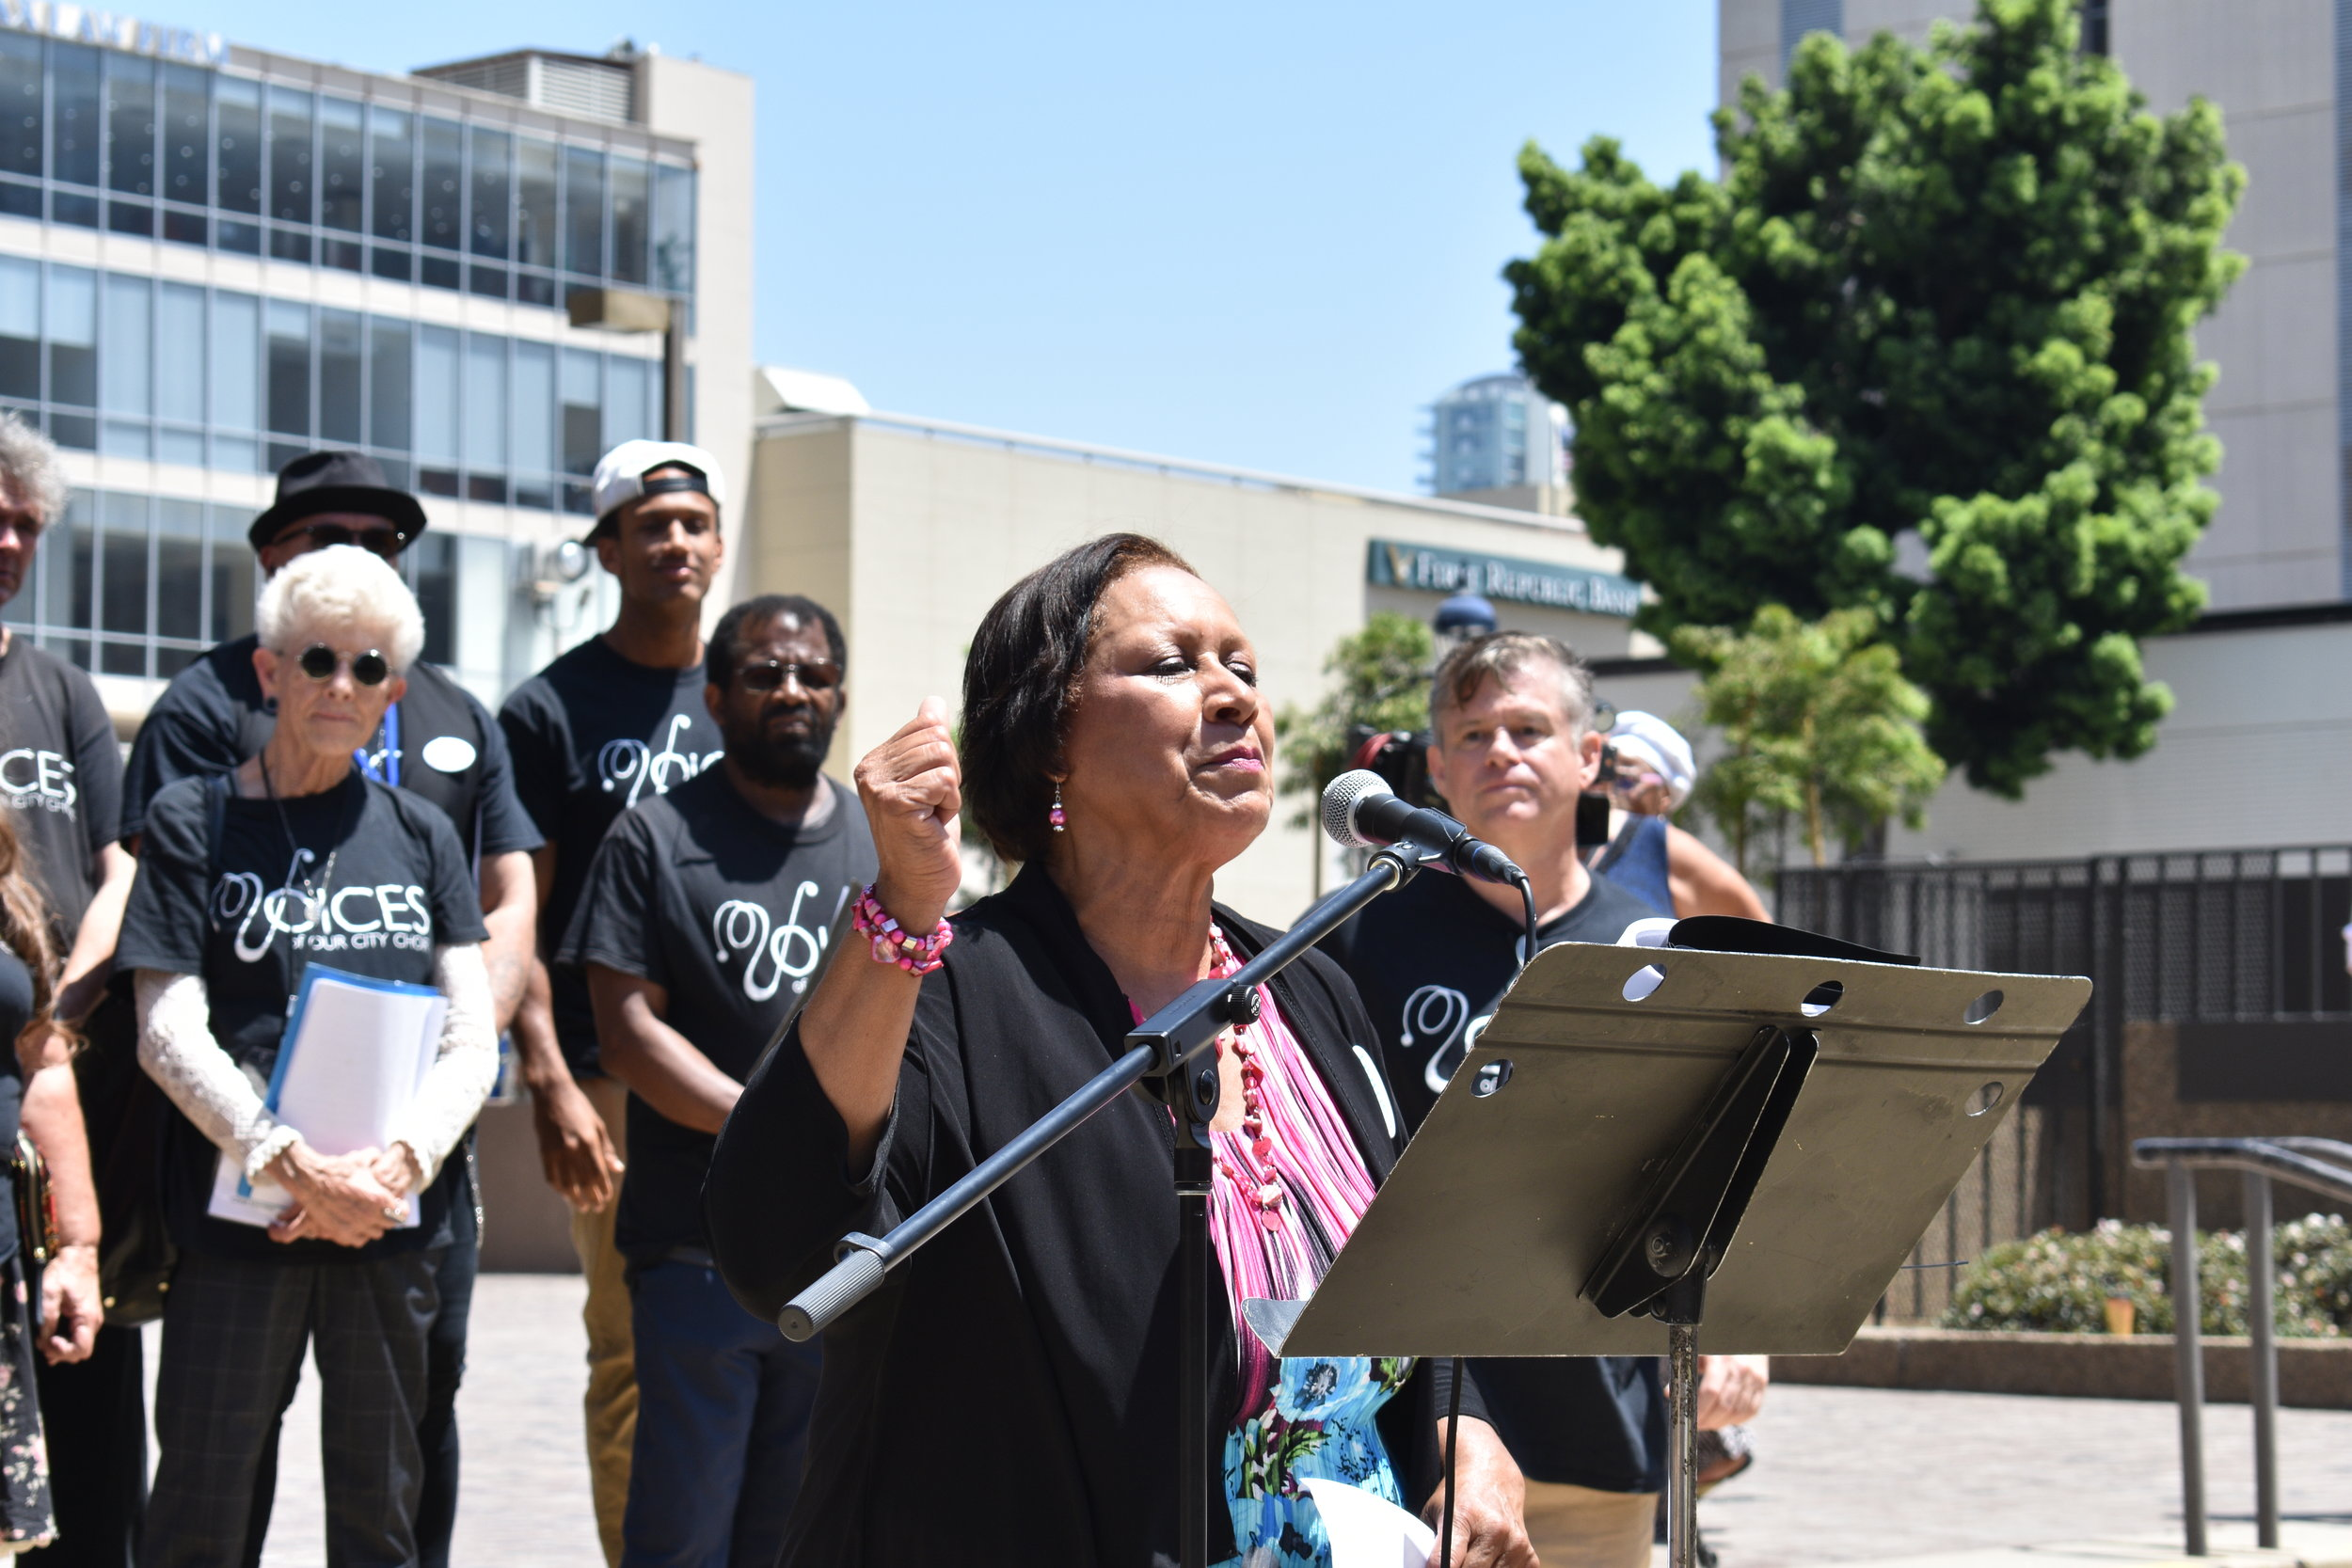 Jo Barrett, John Brady, and Voices of Our City Choir speaking before the rally, July 2019